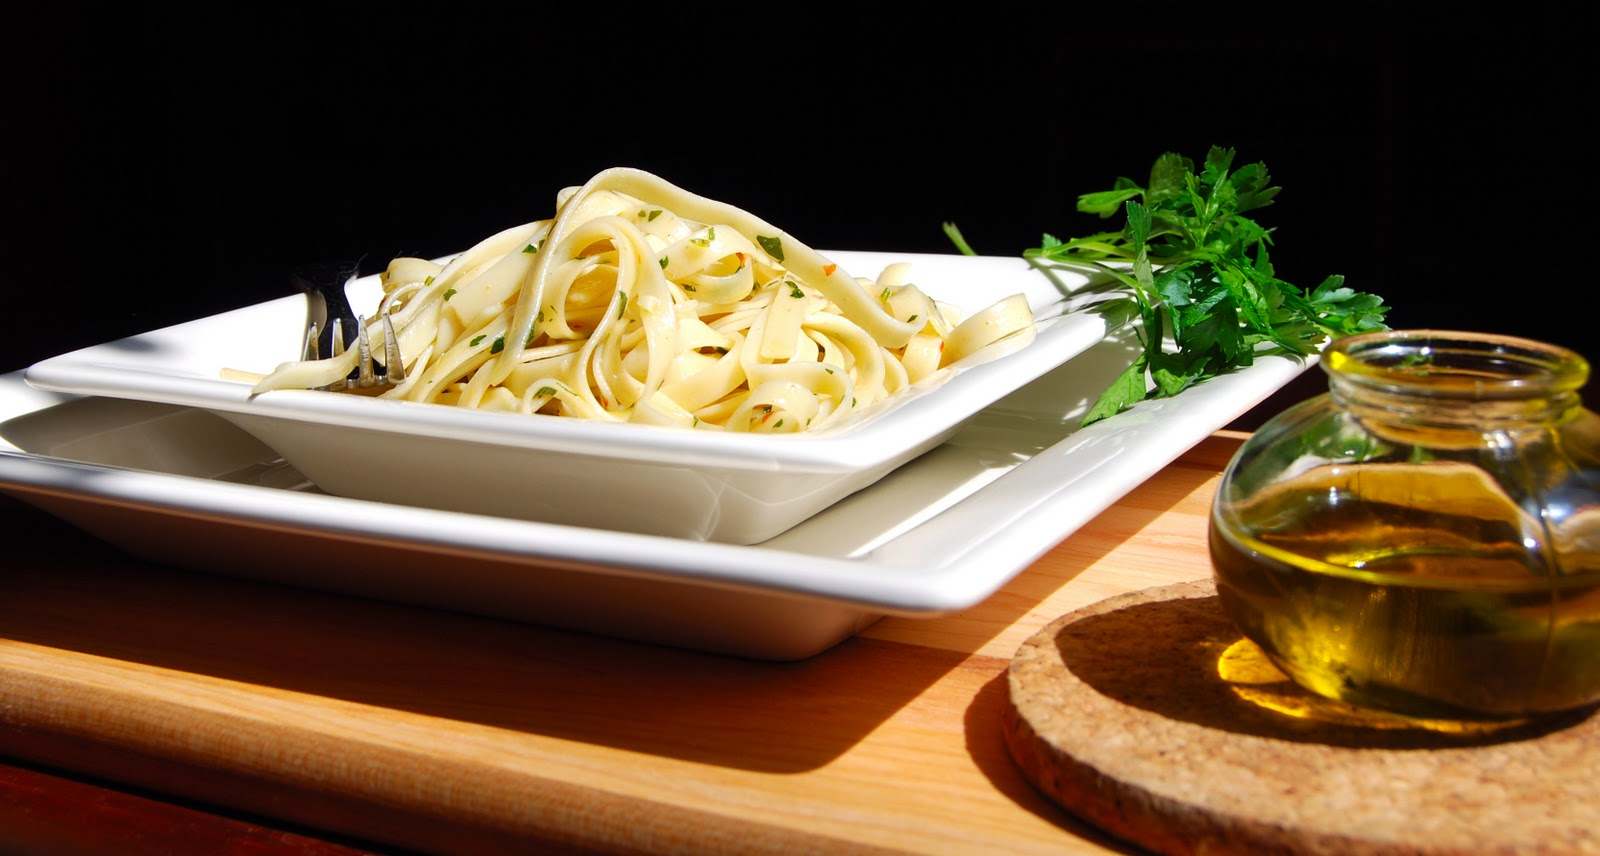 Fettuccine with olive oil and garlic holy cow fettuccine with olive oil and garlic forumfinder Choice Image